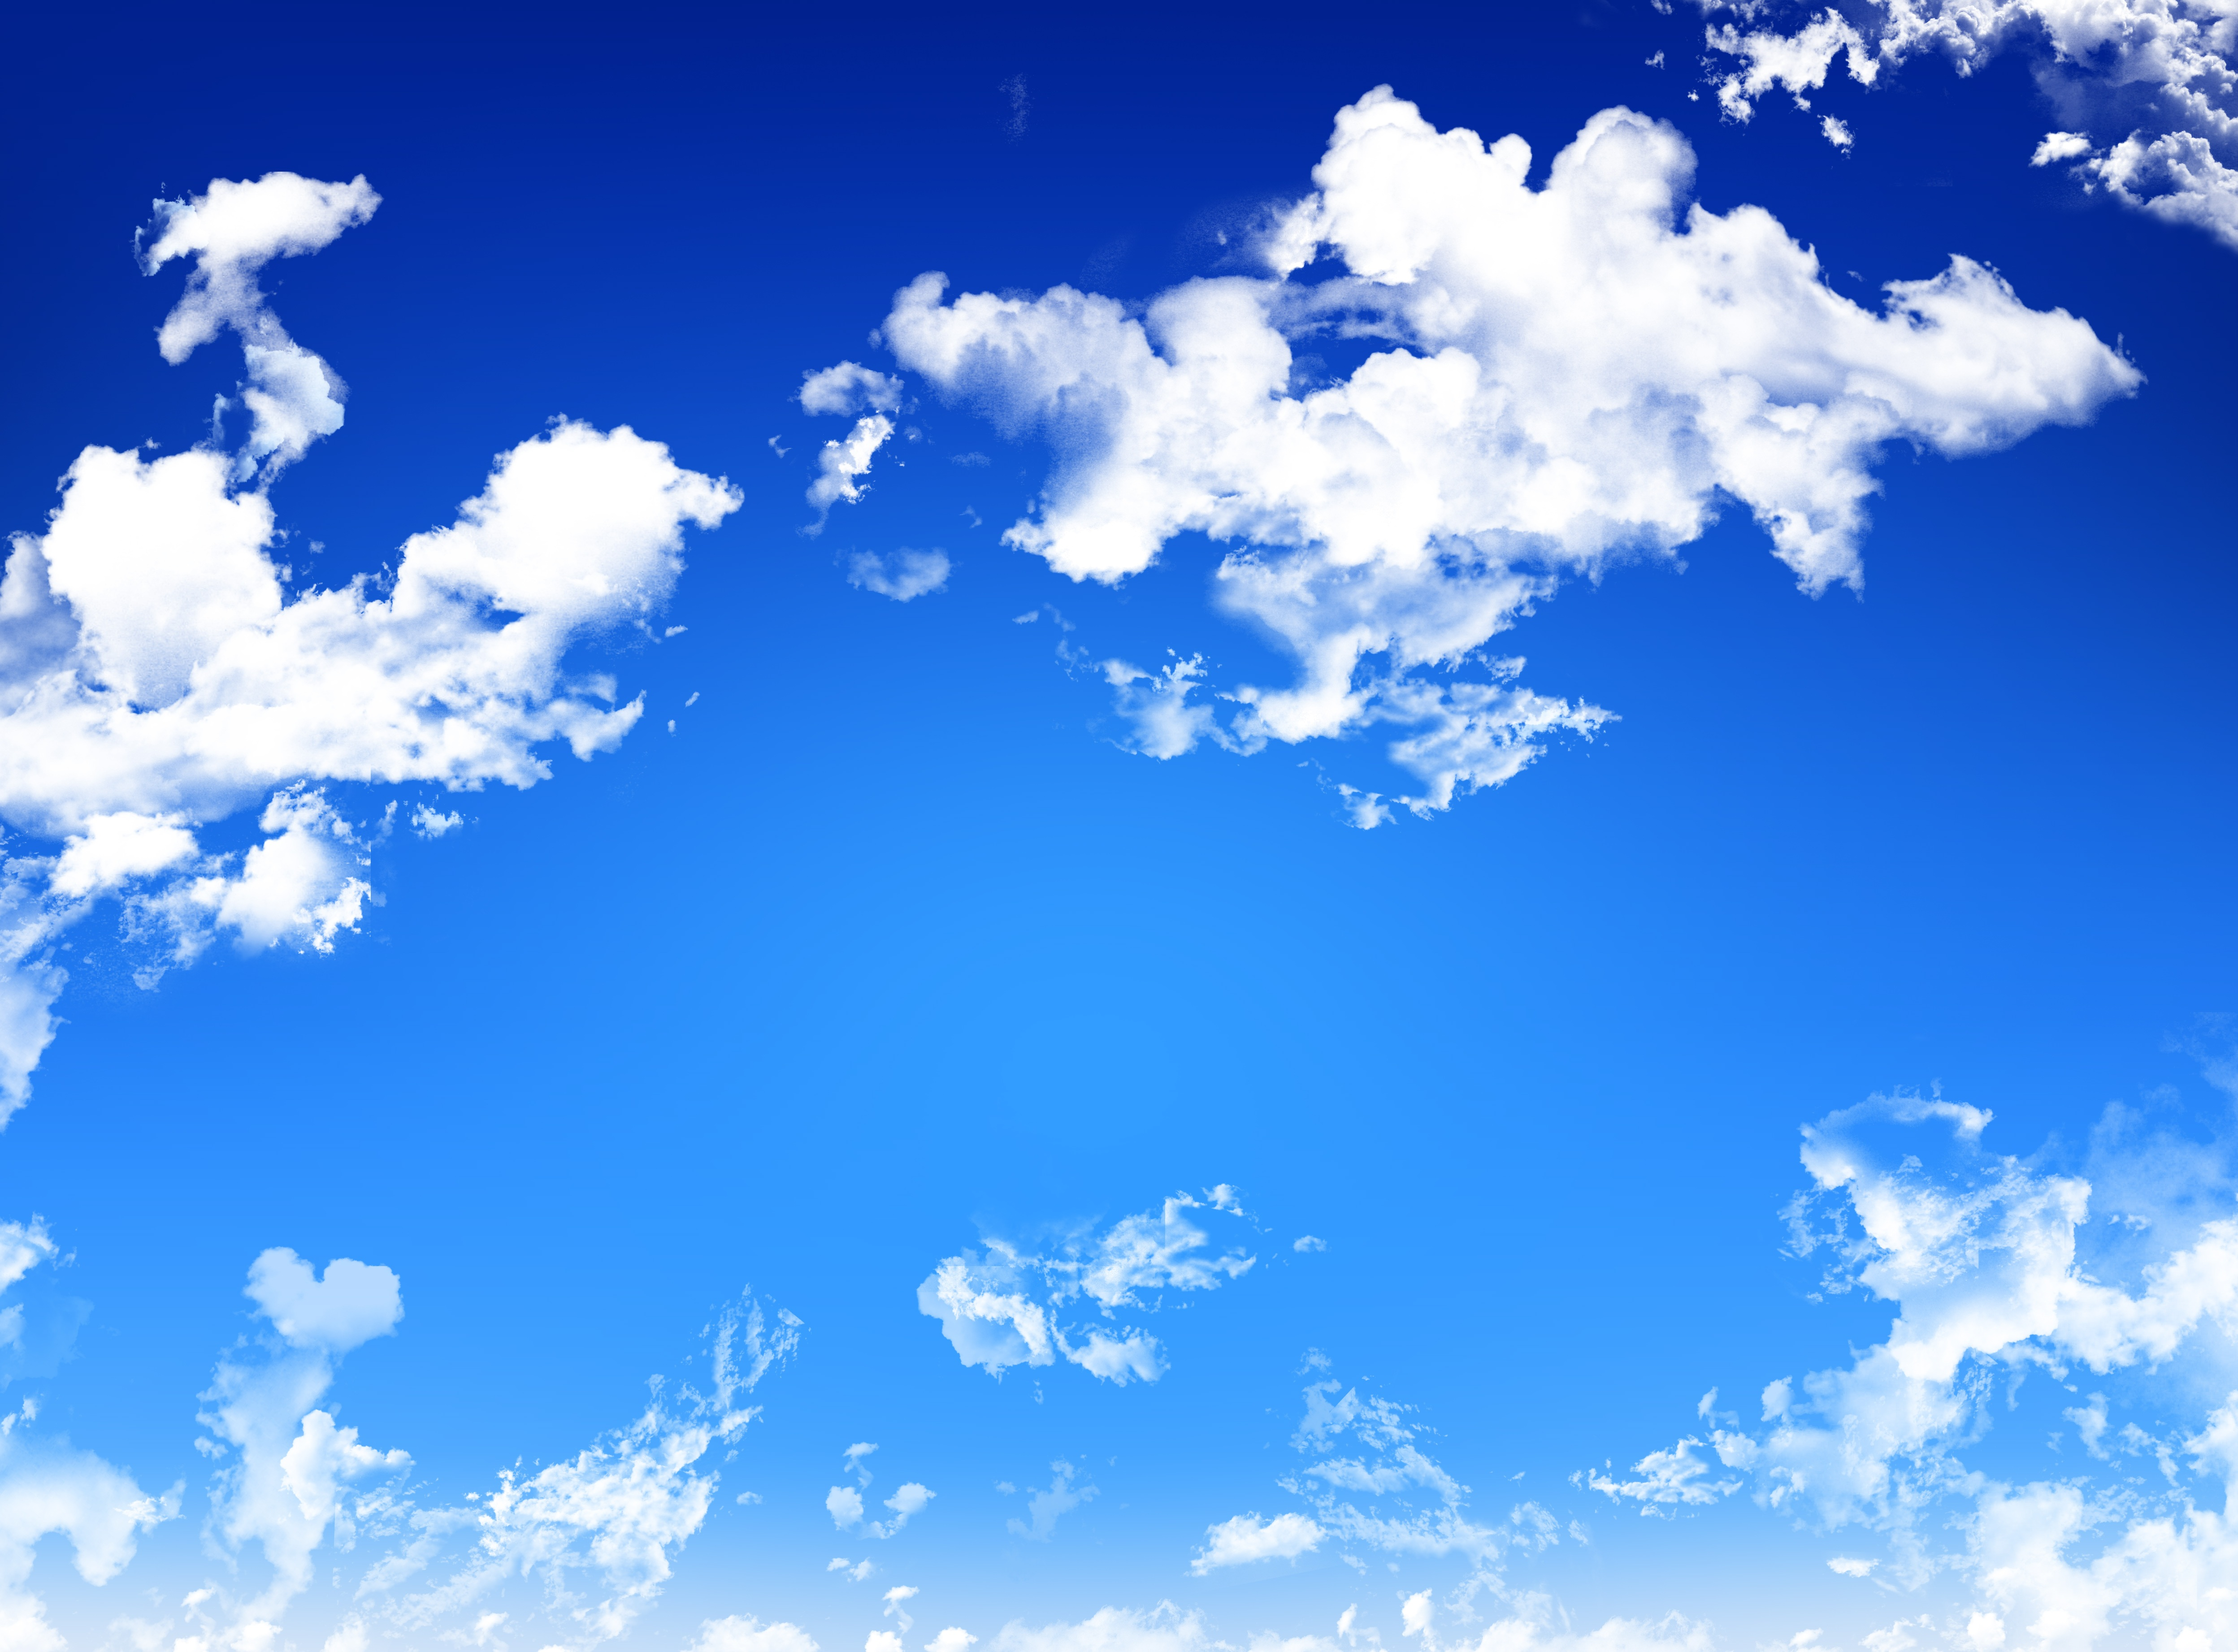 Blue Sky with White Clouds Clouds